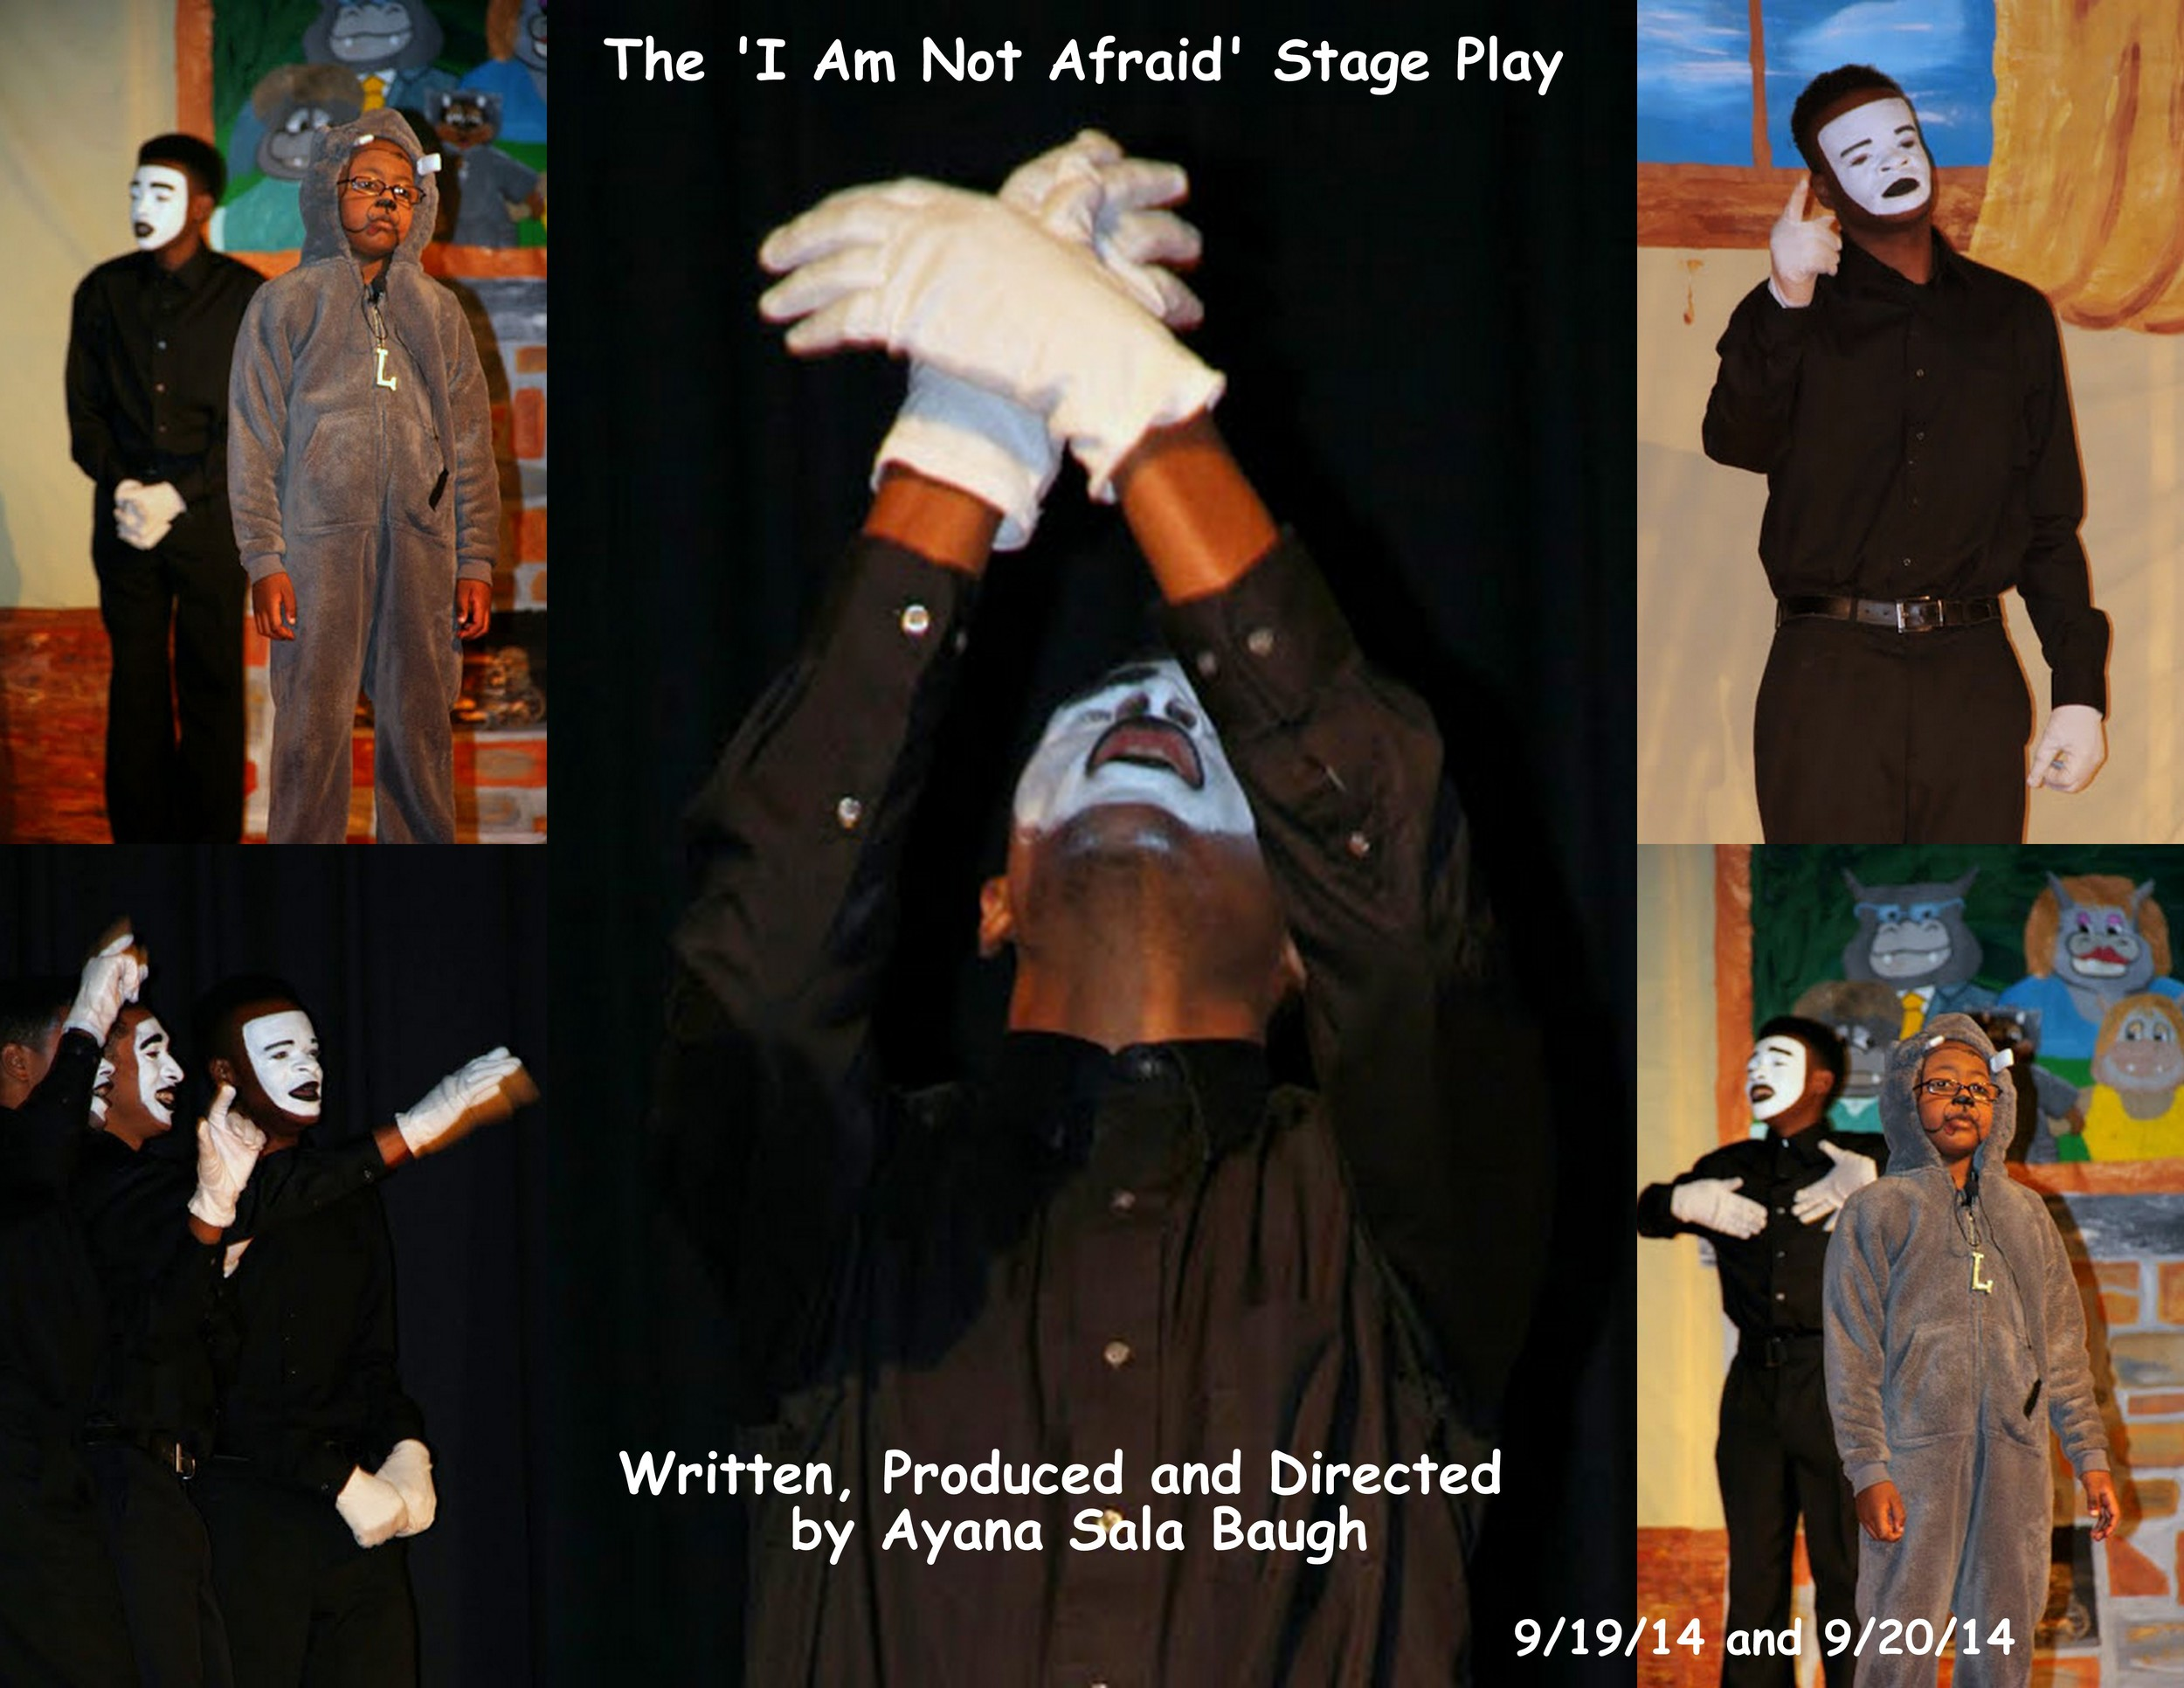 I Am Not Afraid Stage Play Pics 091914 and 0920144 collage 6.jpg